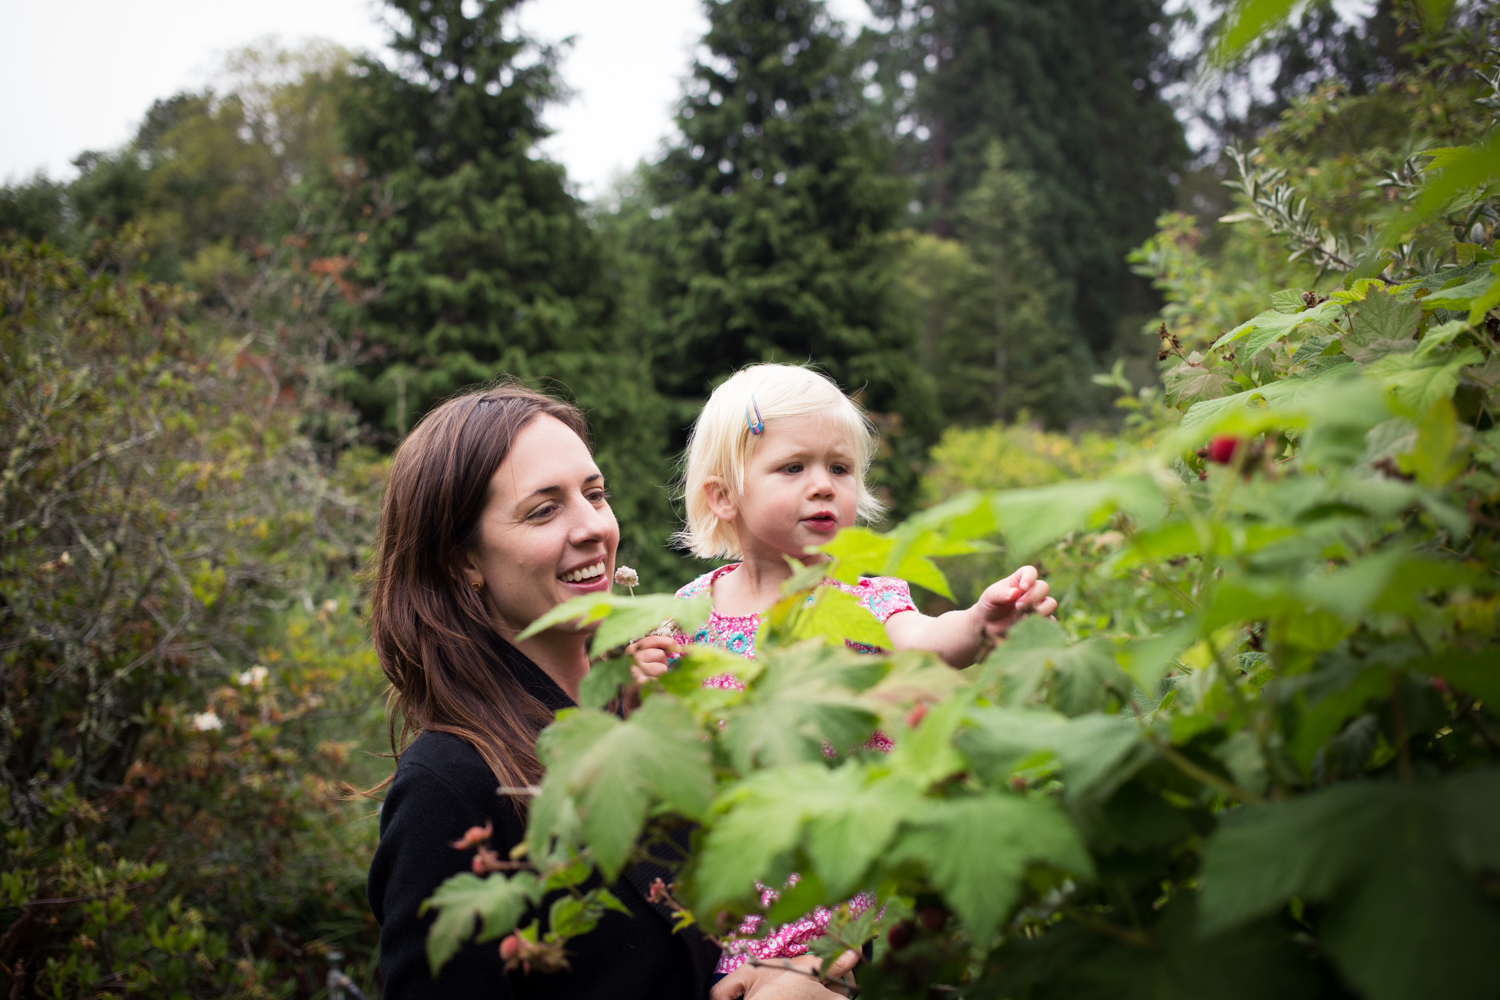 picking berries, bay area family portrait photographer